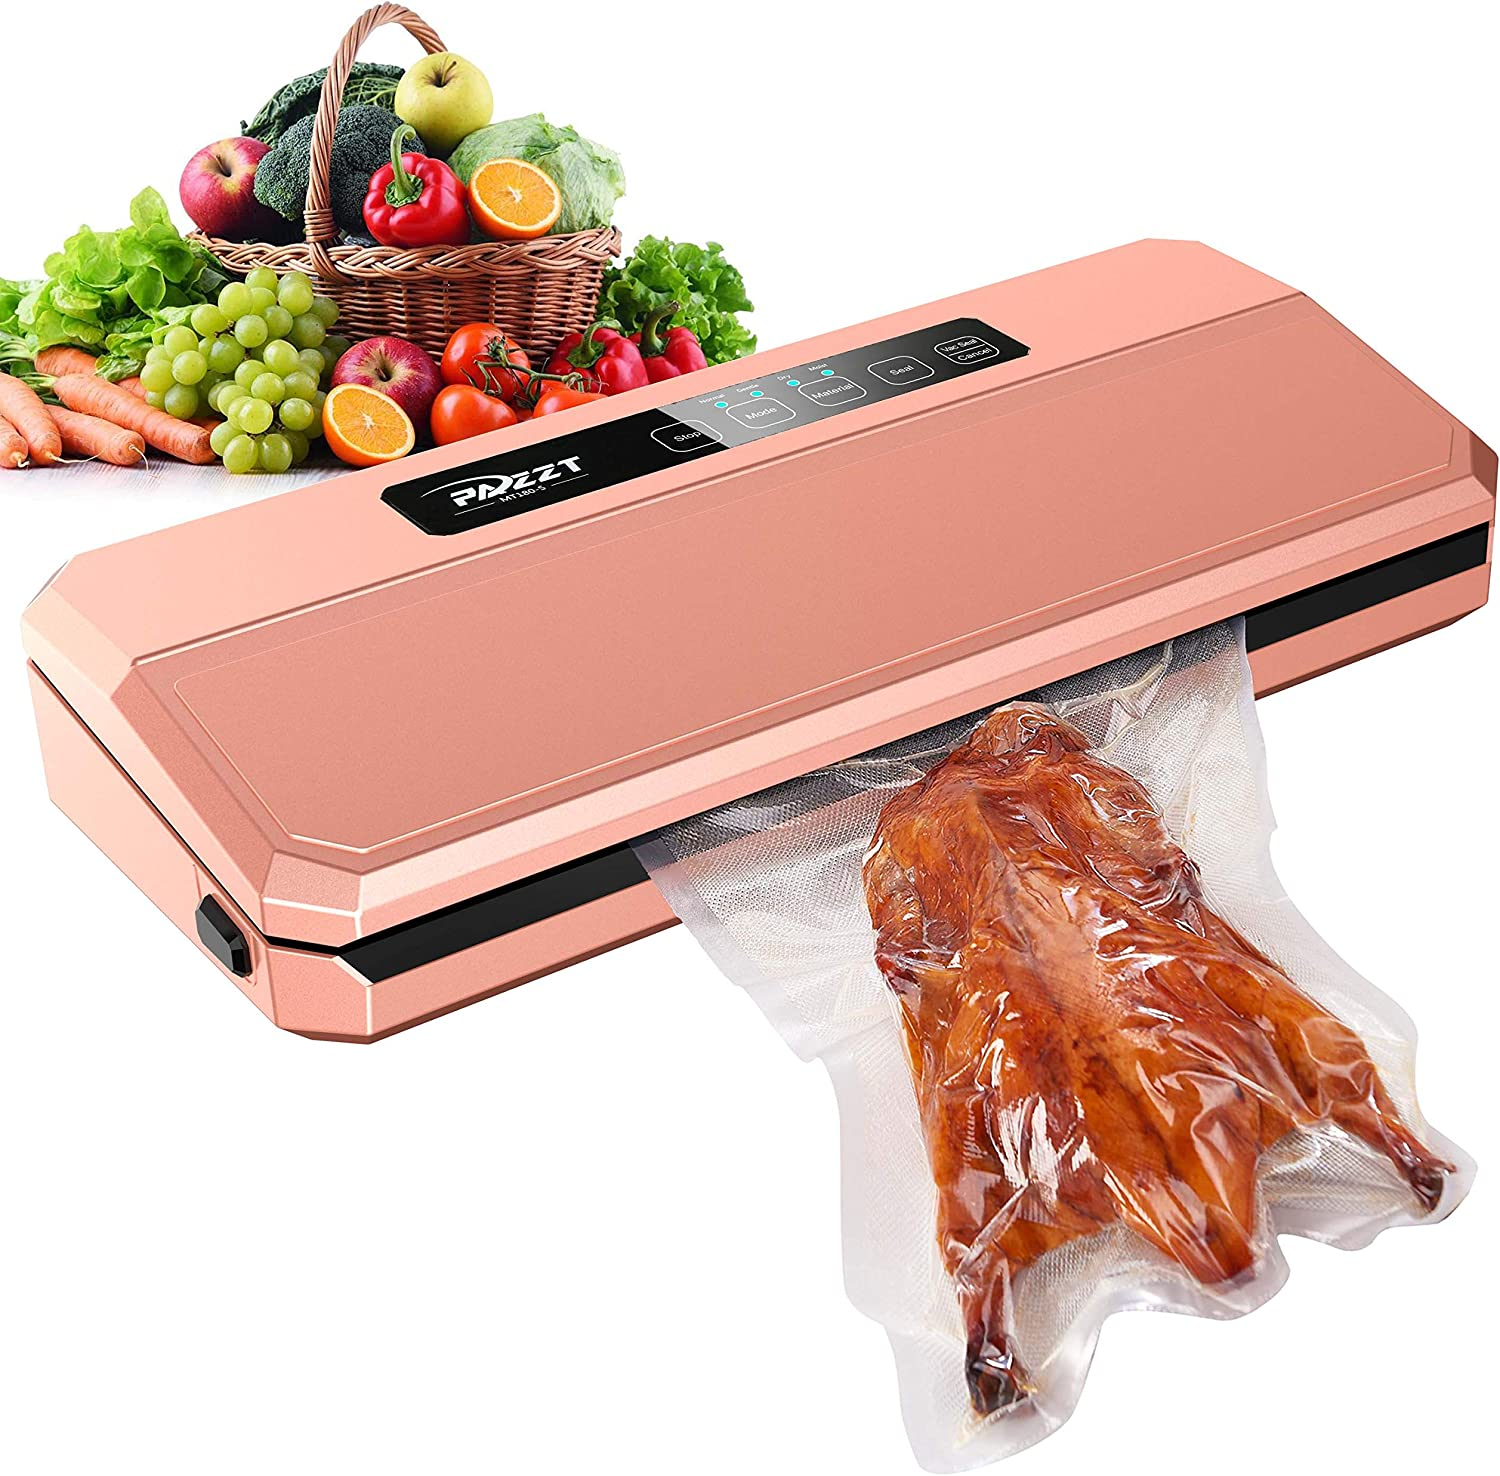 PAZZT Vacuum Sealer Machine,Food Sealers Vacuum Packing Machine,Hidden Power Cord Design,with Starter Kit